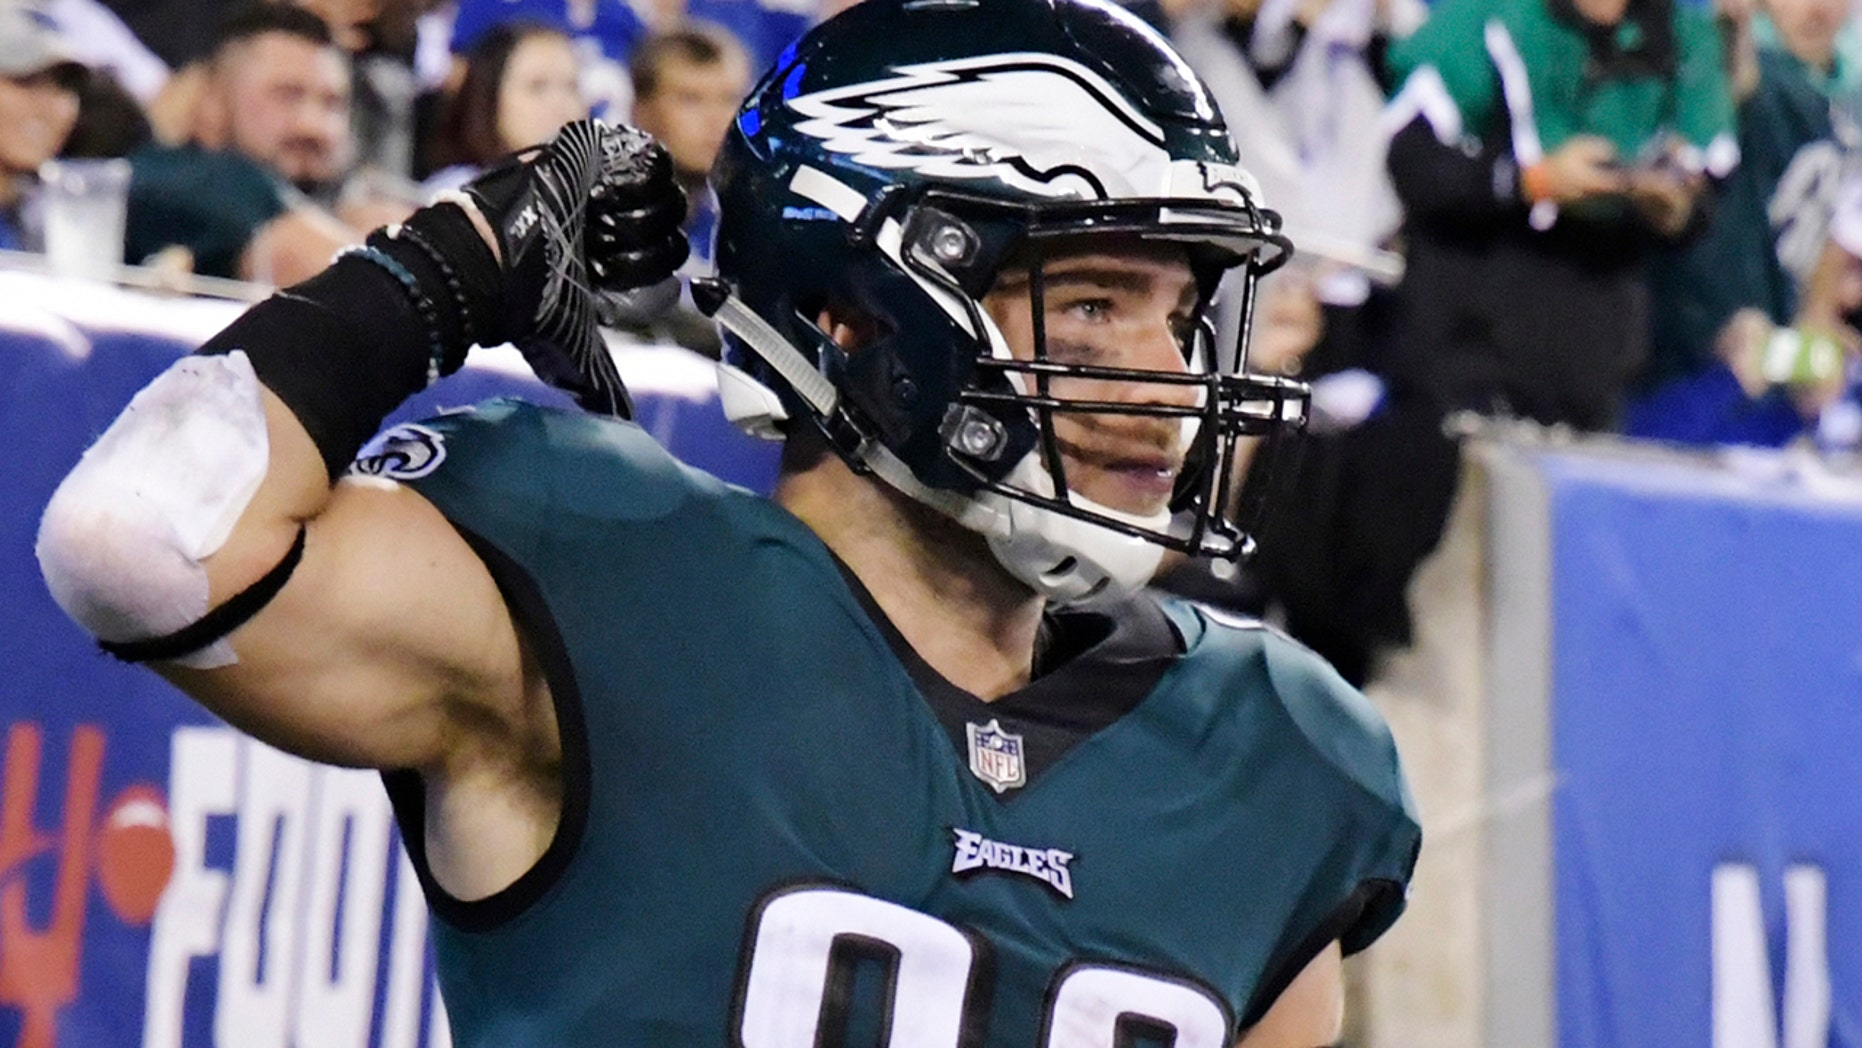 Philadelphia Eagles' Zach Ertz celebrates after catching a pass for a touchdown during the first half of the team's NFL football game against the New York Giants in East Rutherford, N.J., Oct. 11, 2018.